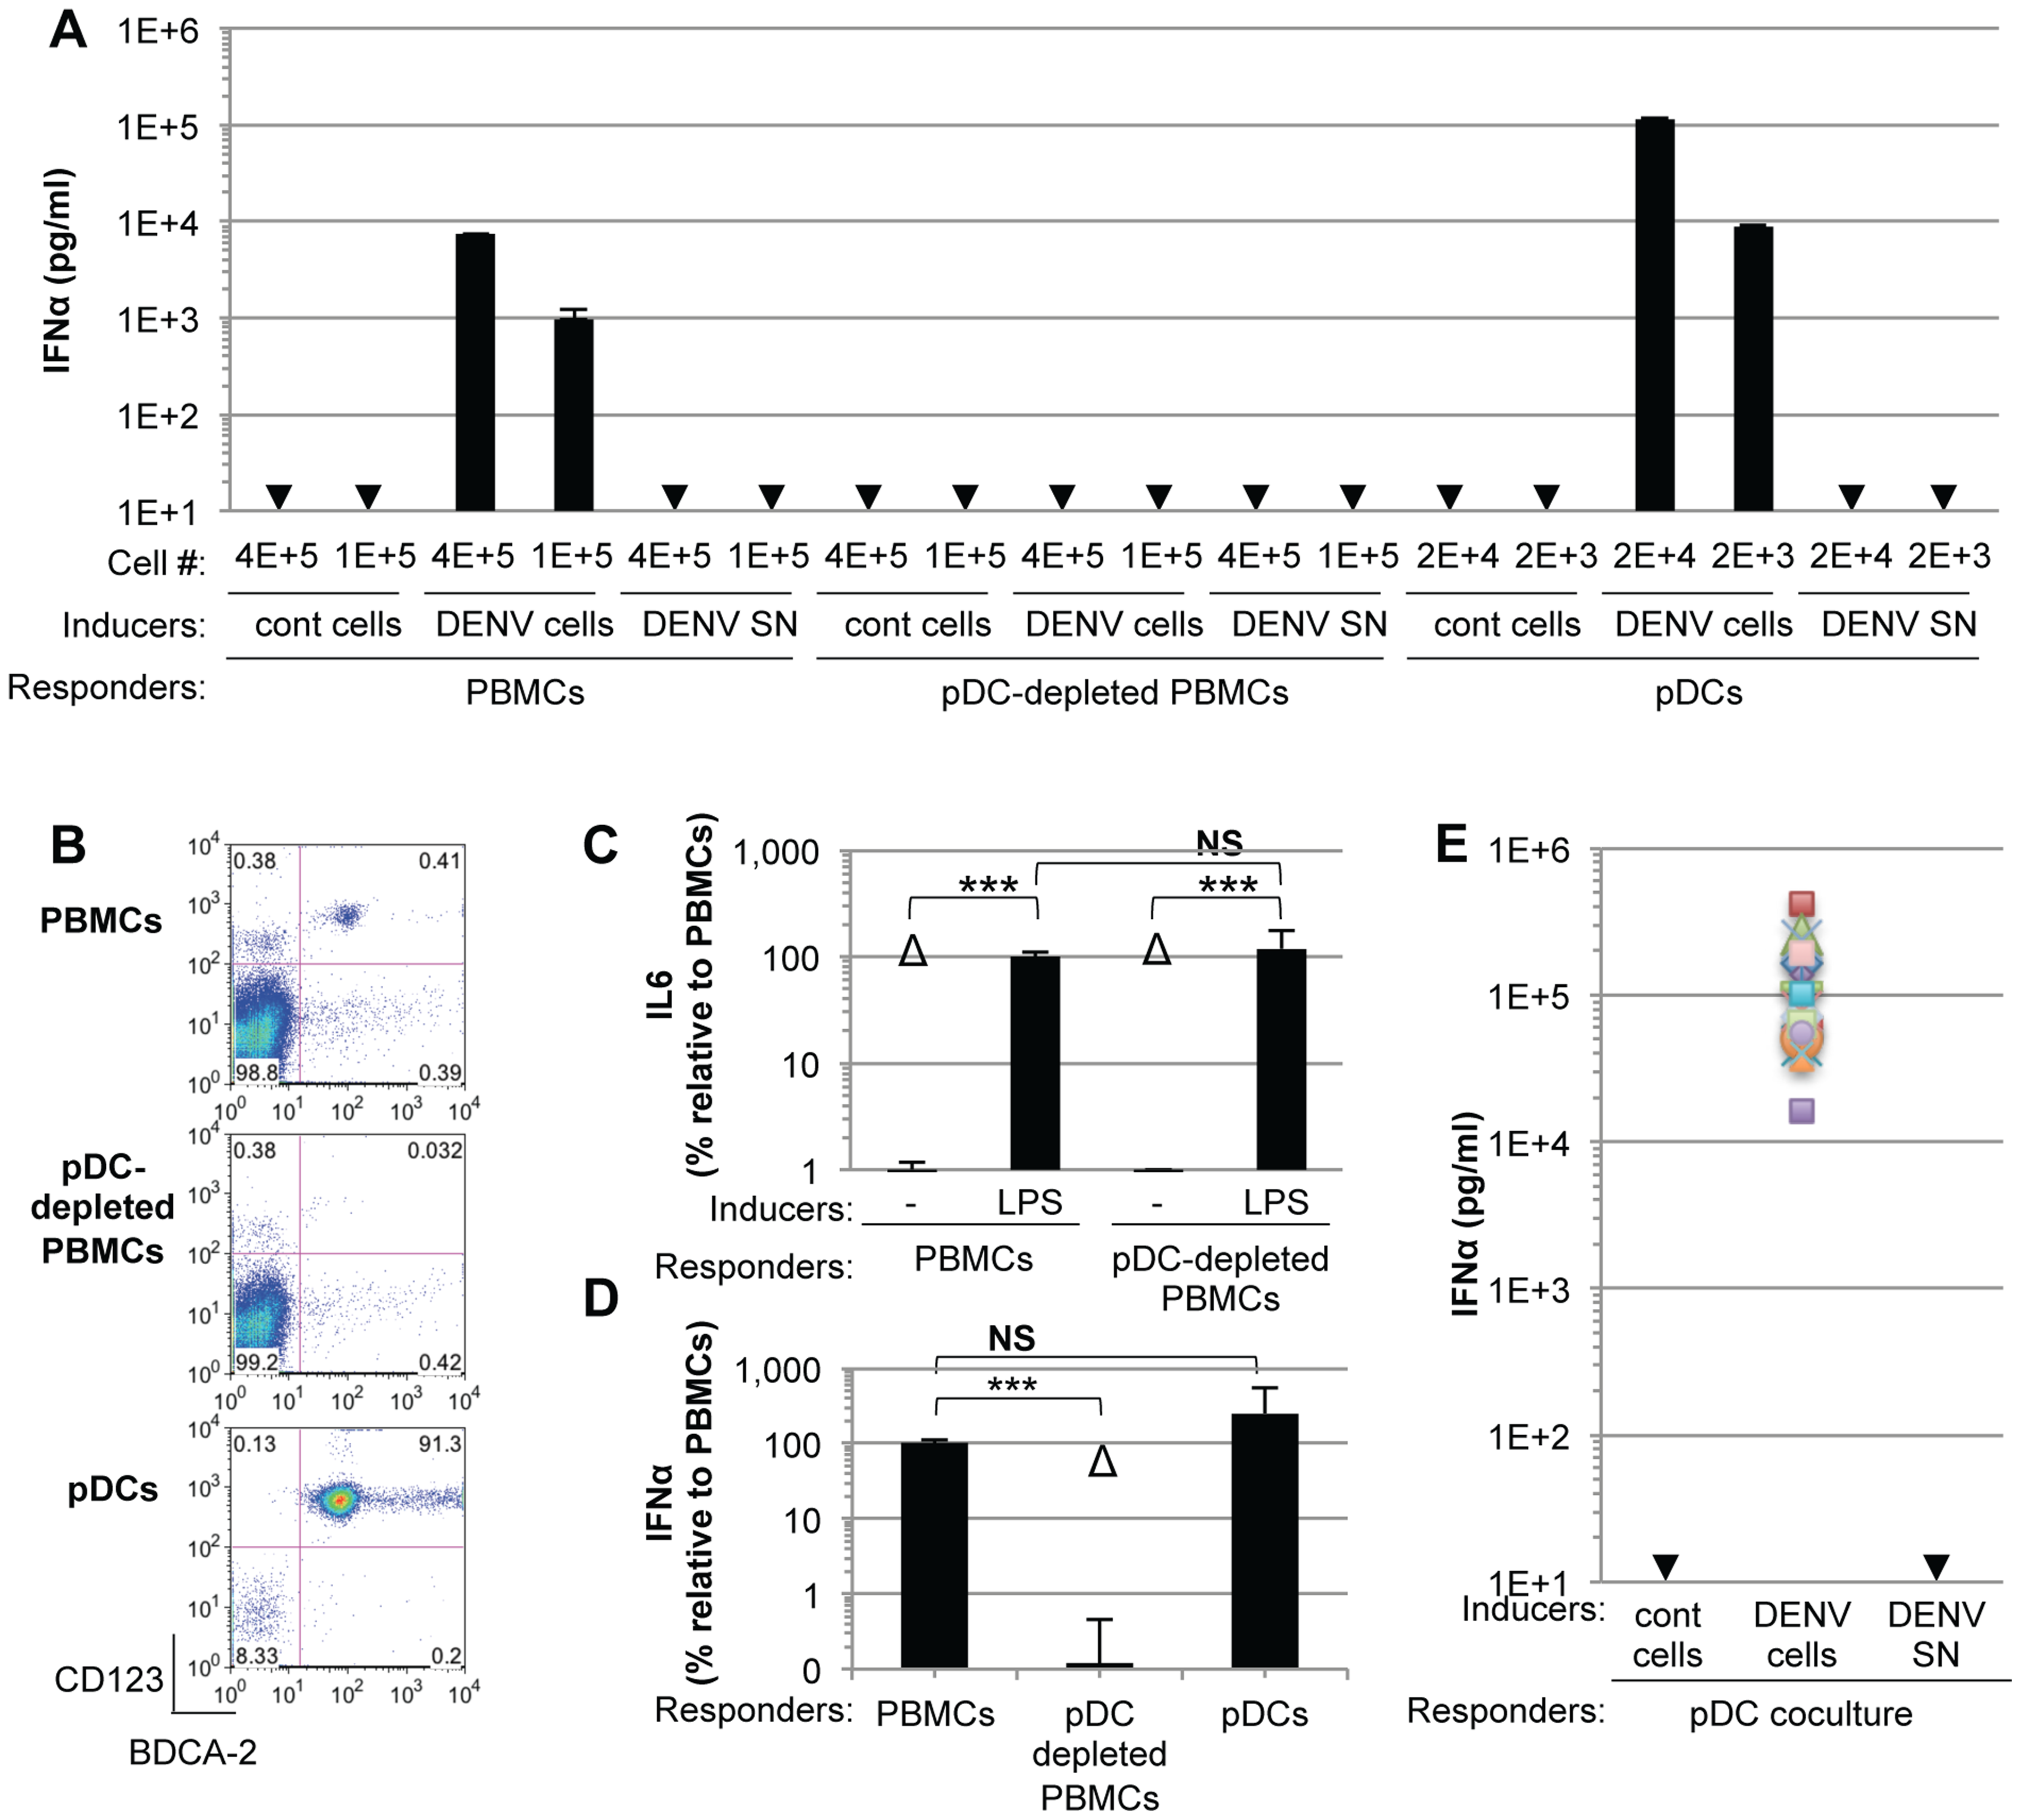 pDCs robustly produce IFNα in response to DENV infected cells.